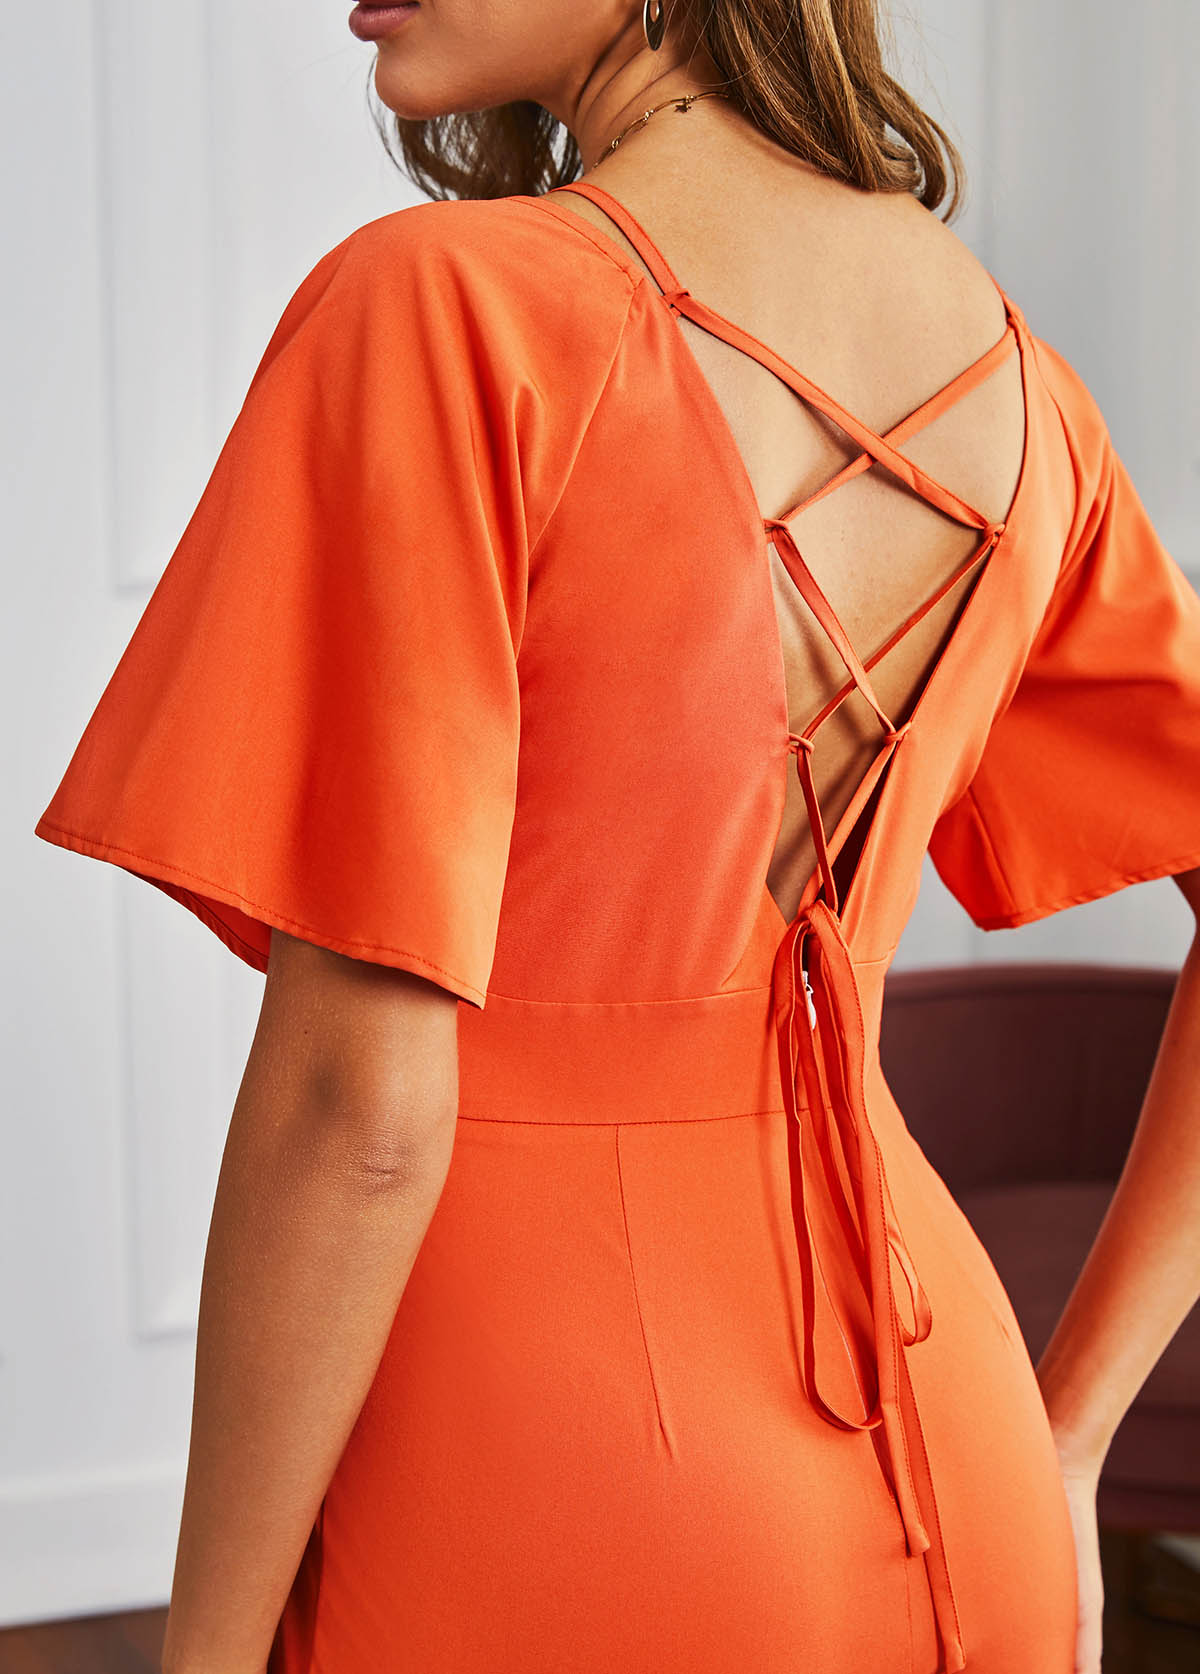 Short Sleeve Orange Strappy Back Romper